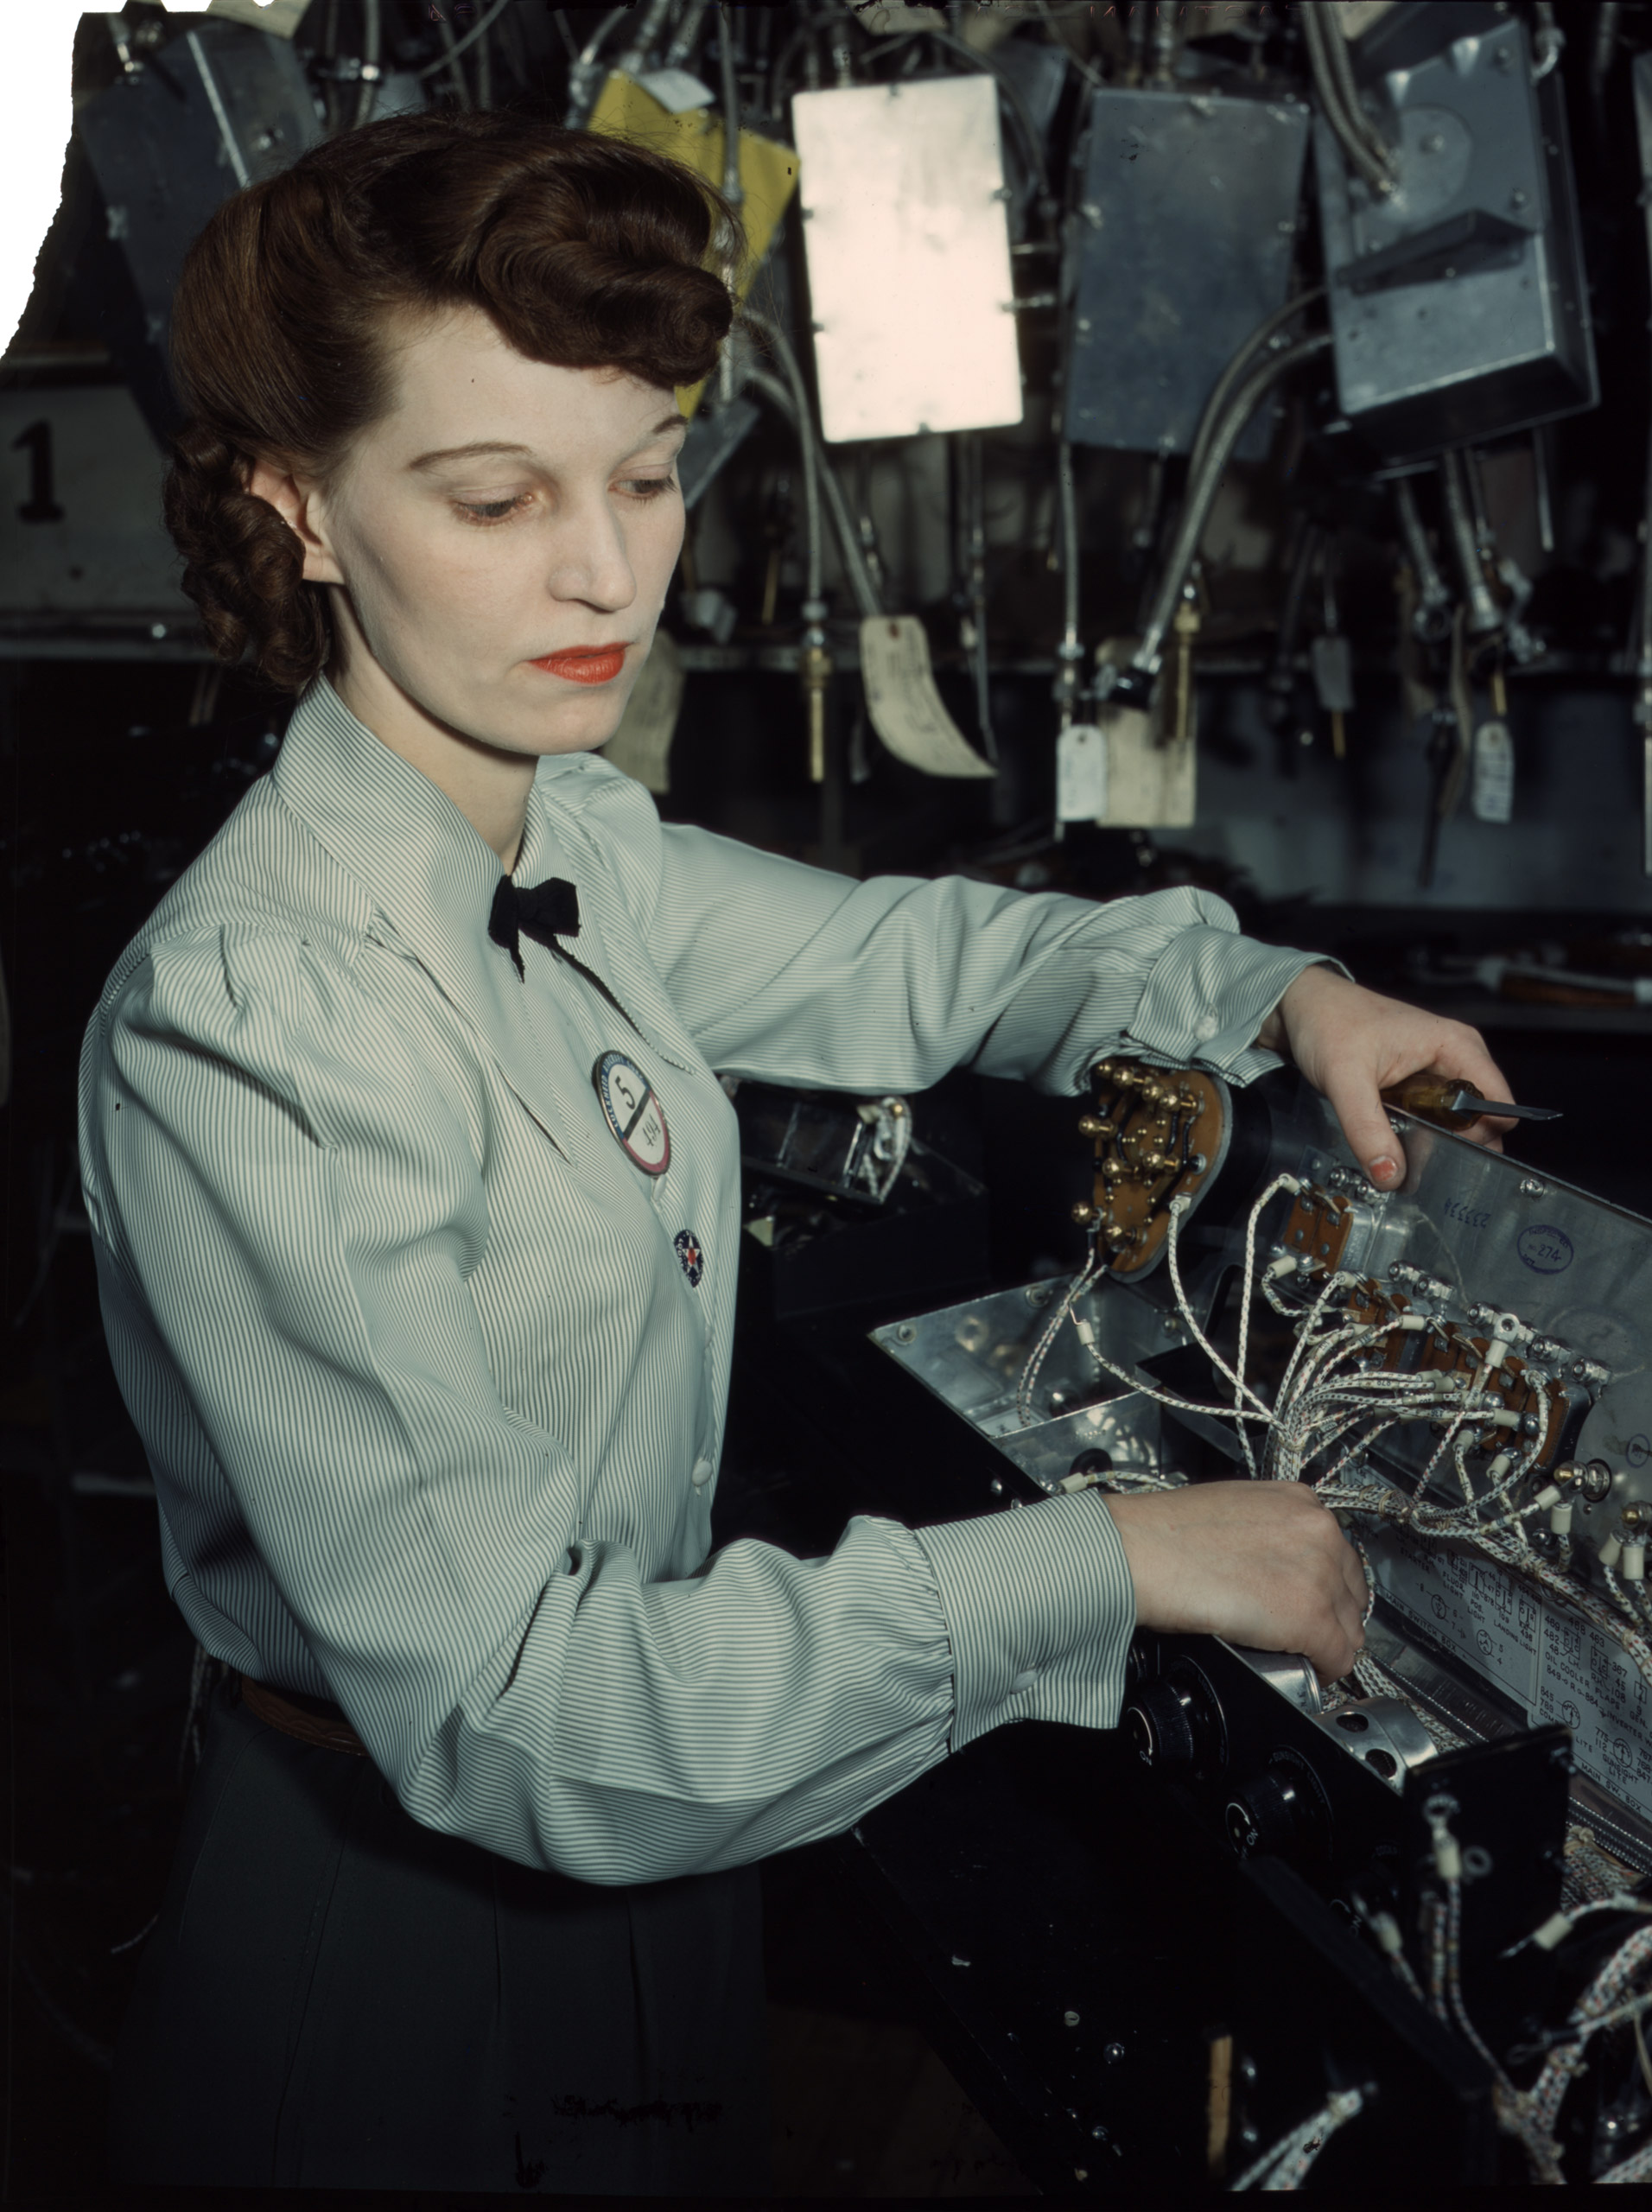 Electronics technician, Goodyear Aircraft Corp., Akron, Ohio, December 1941. Photographed by Alfred T. Palmer for the Farm Security Administration.